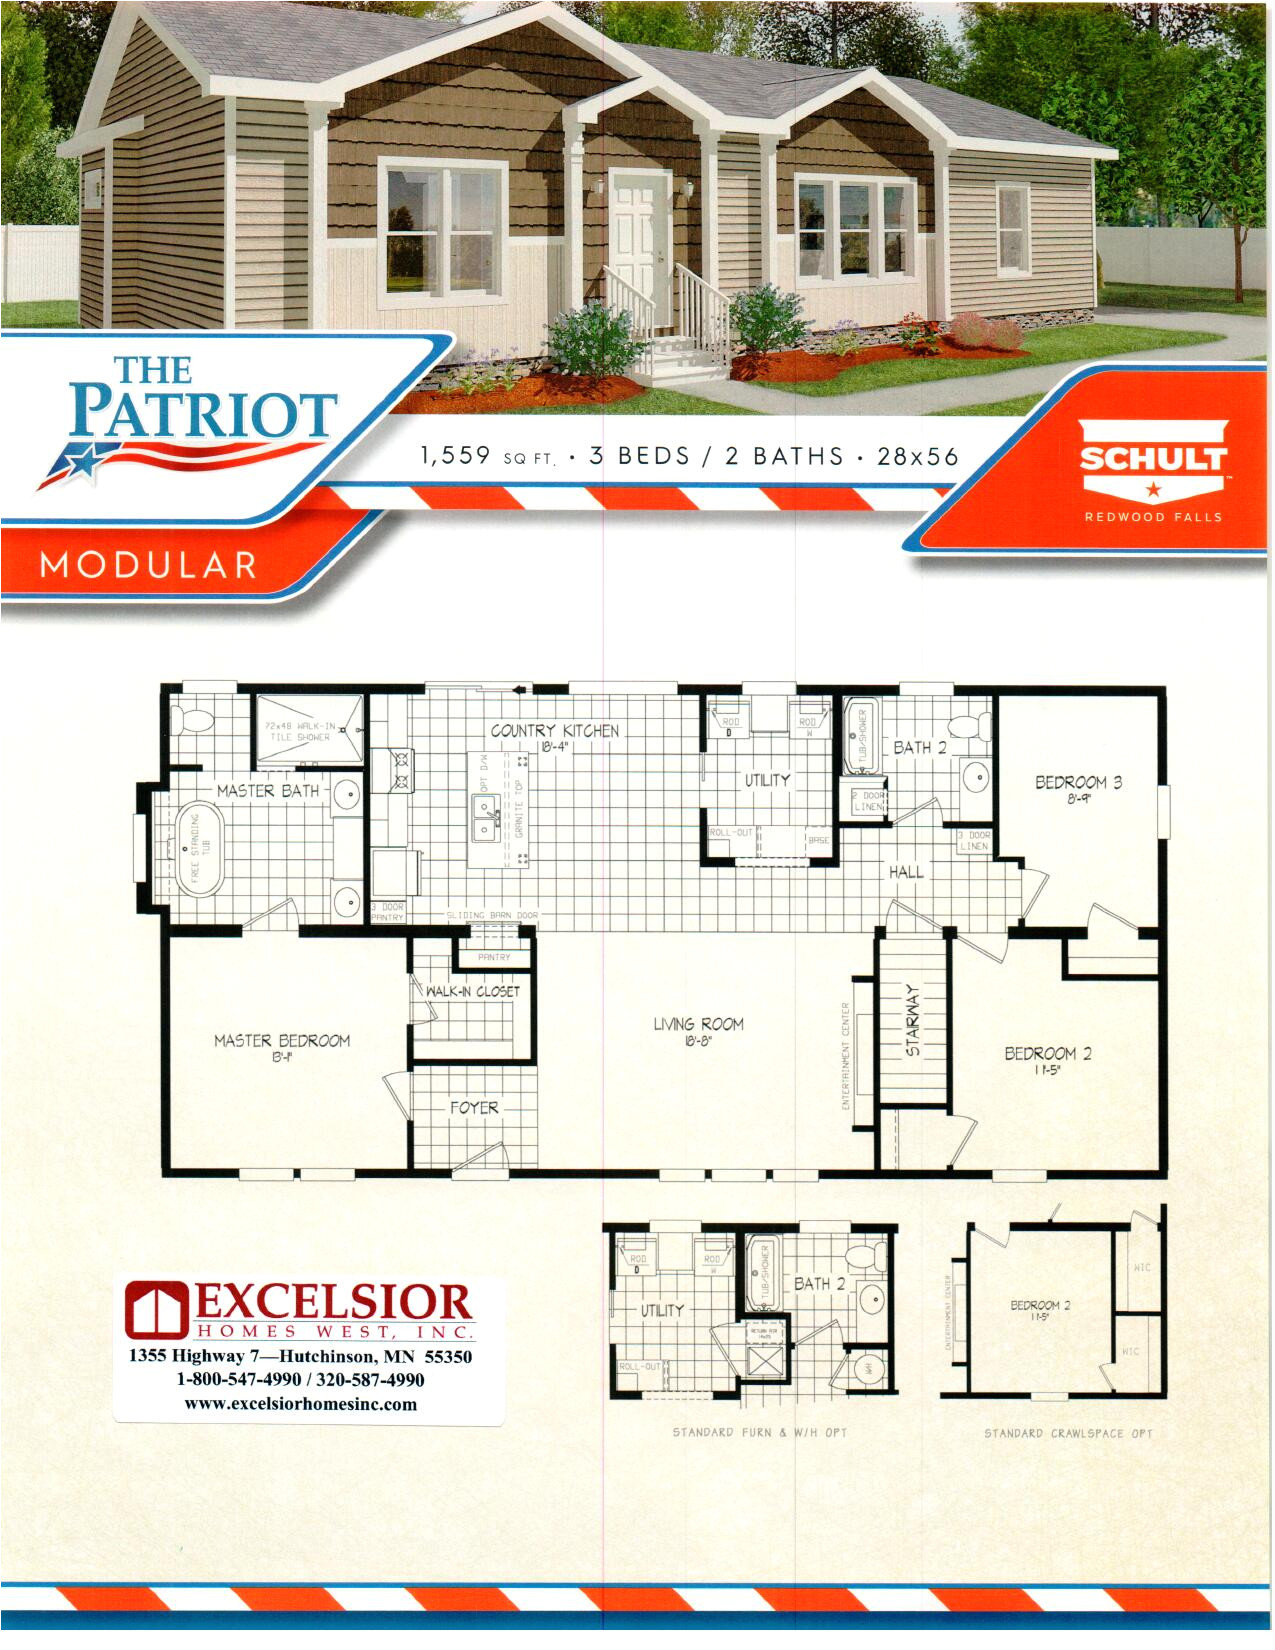 schult homes patriot modular home plan